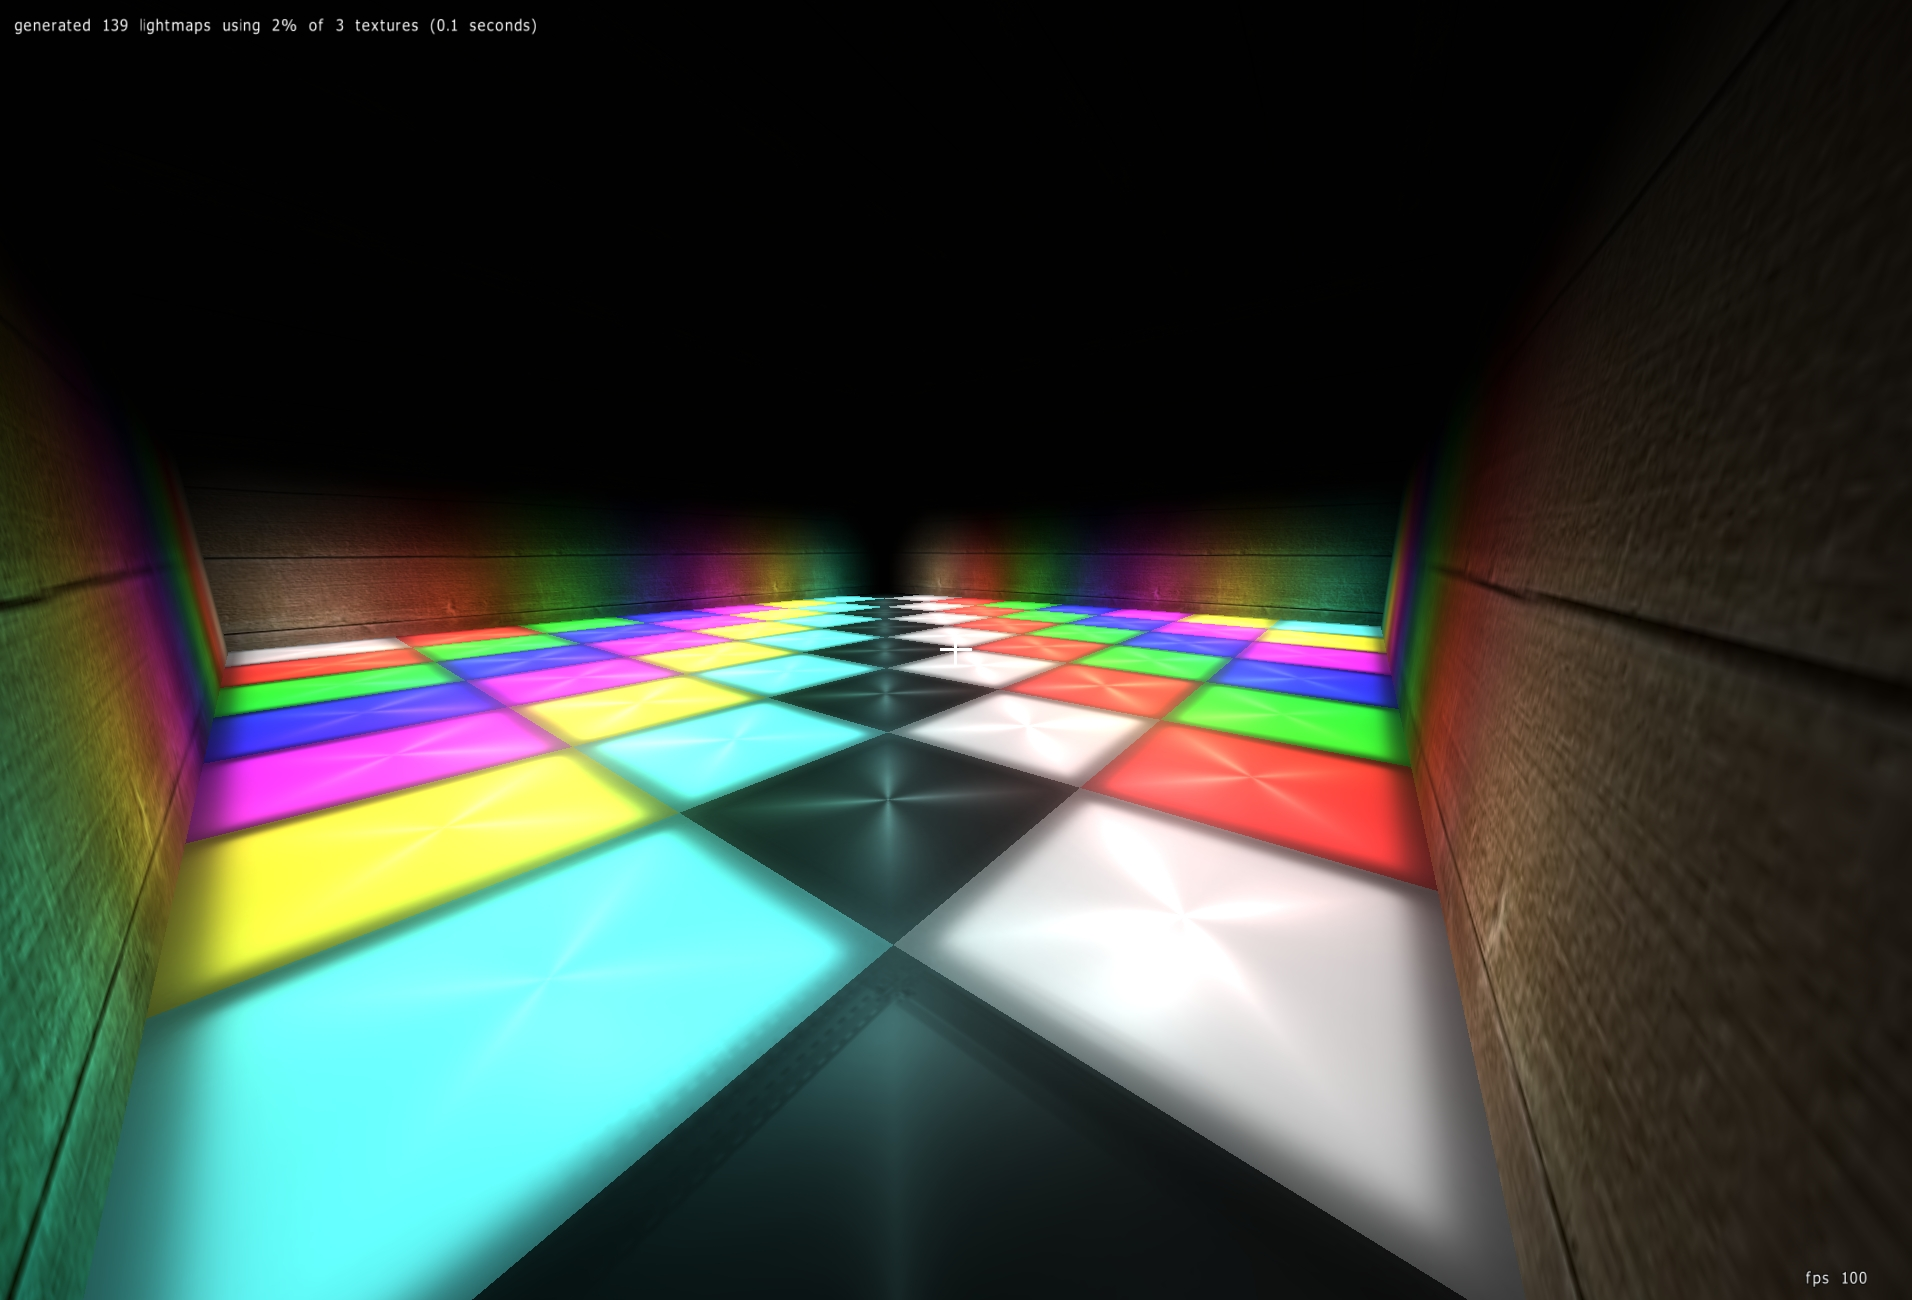 The disco floor tiles that are currently WiP